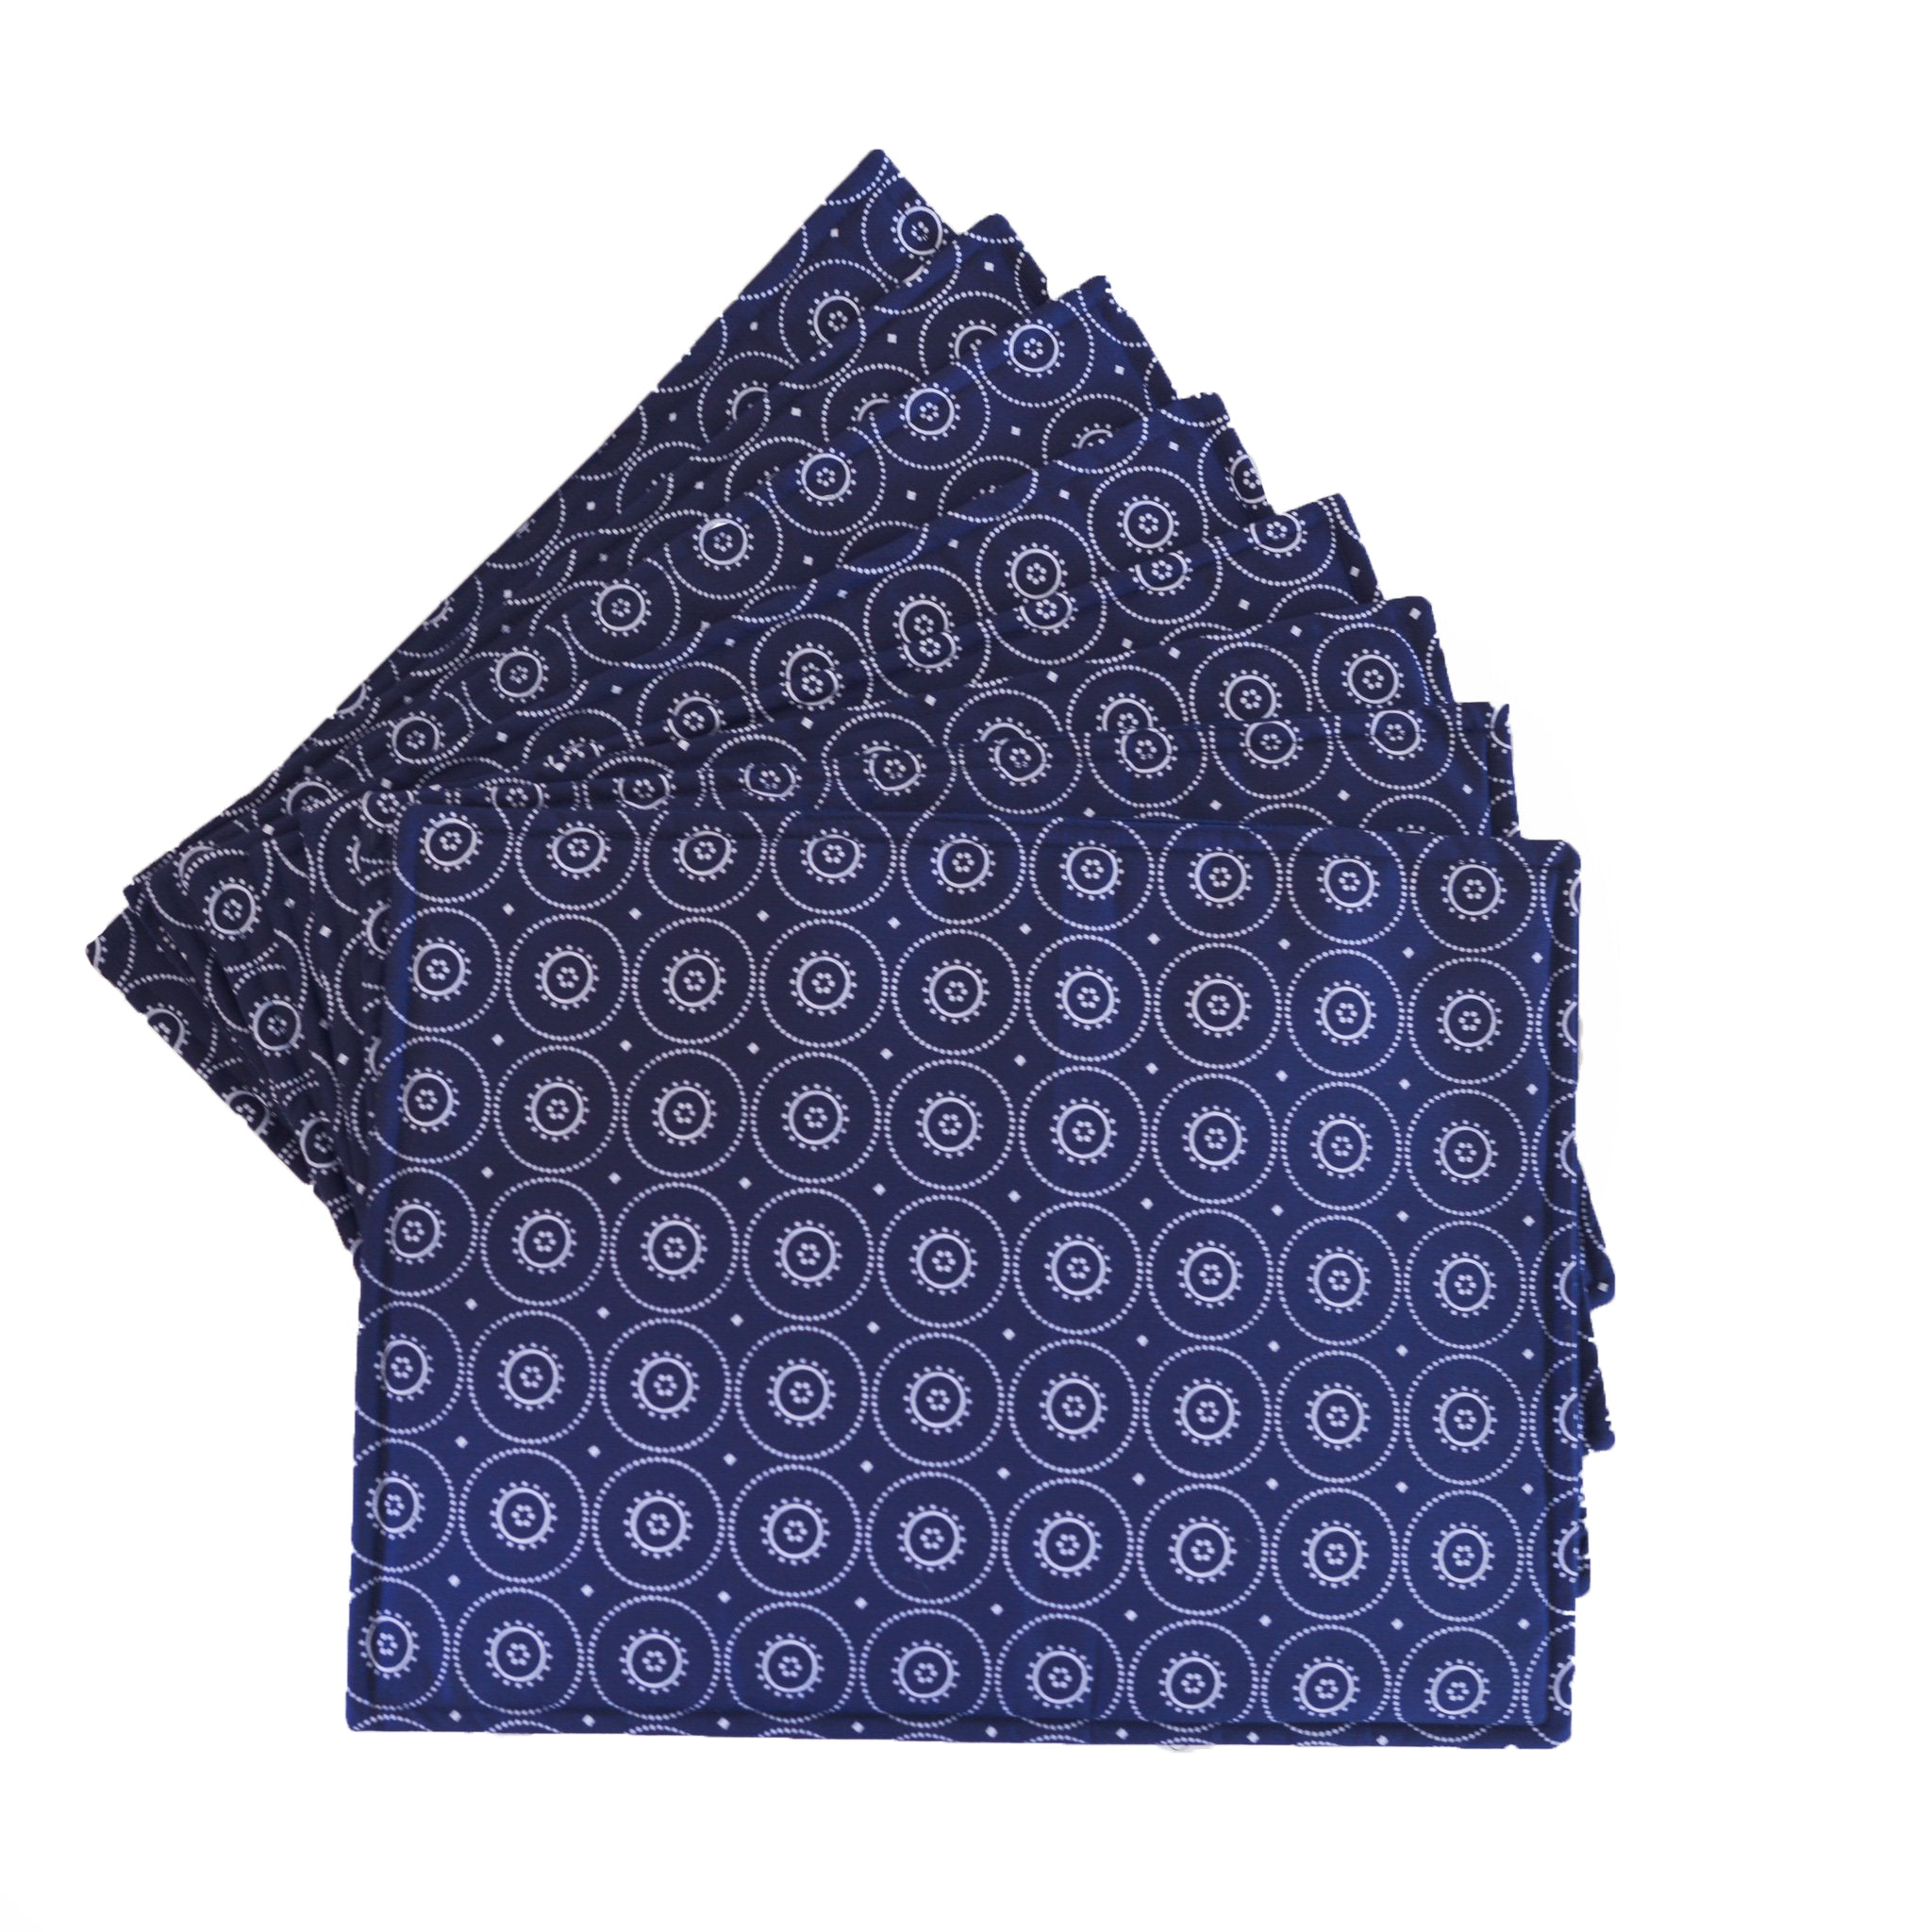 Placemat (set of 6) - LIV Creative